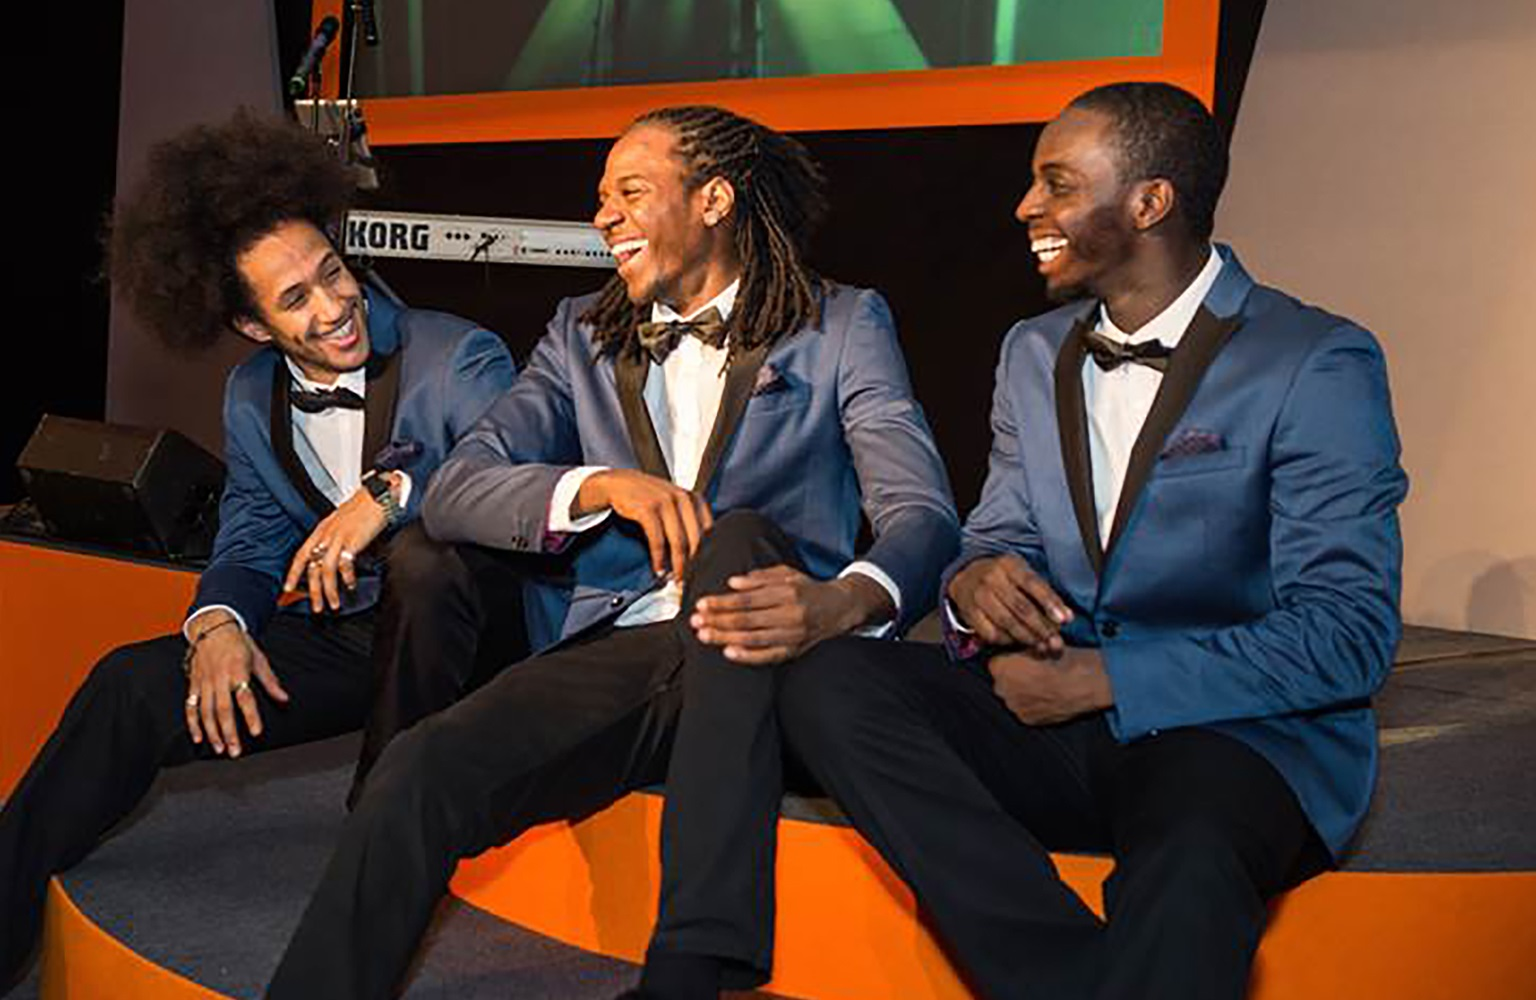 An interview with 'Heshima presents: The Soul Brothers' – talking the Grammy's, Michael Jackson and Motown